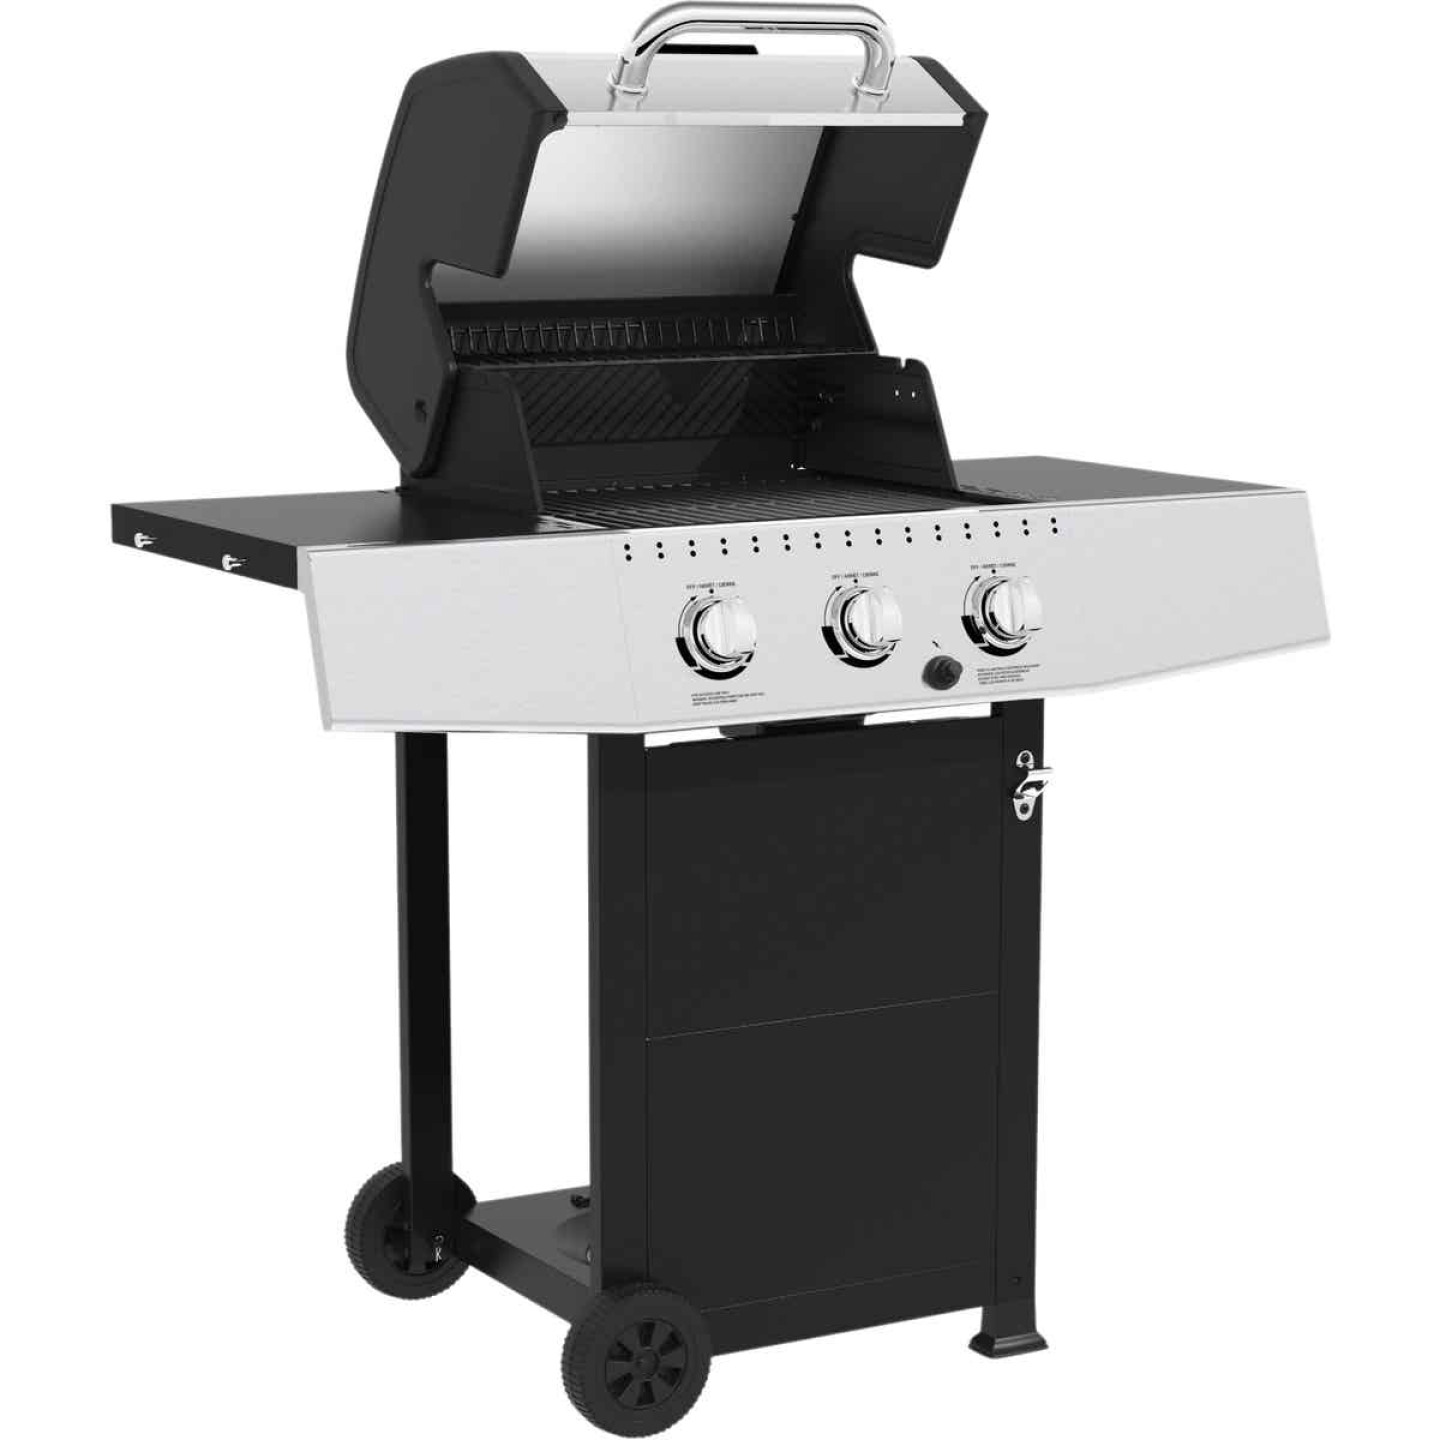 GrillPro 3-Burner Stainless Steel & Black 30,000 BTU LP Gas Grill Image 3